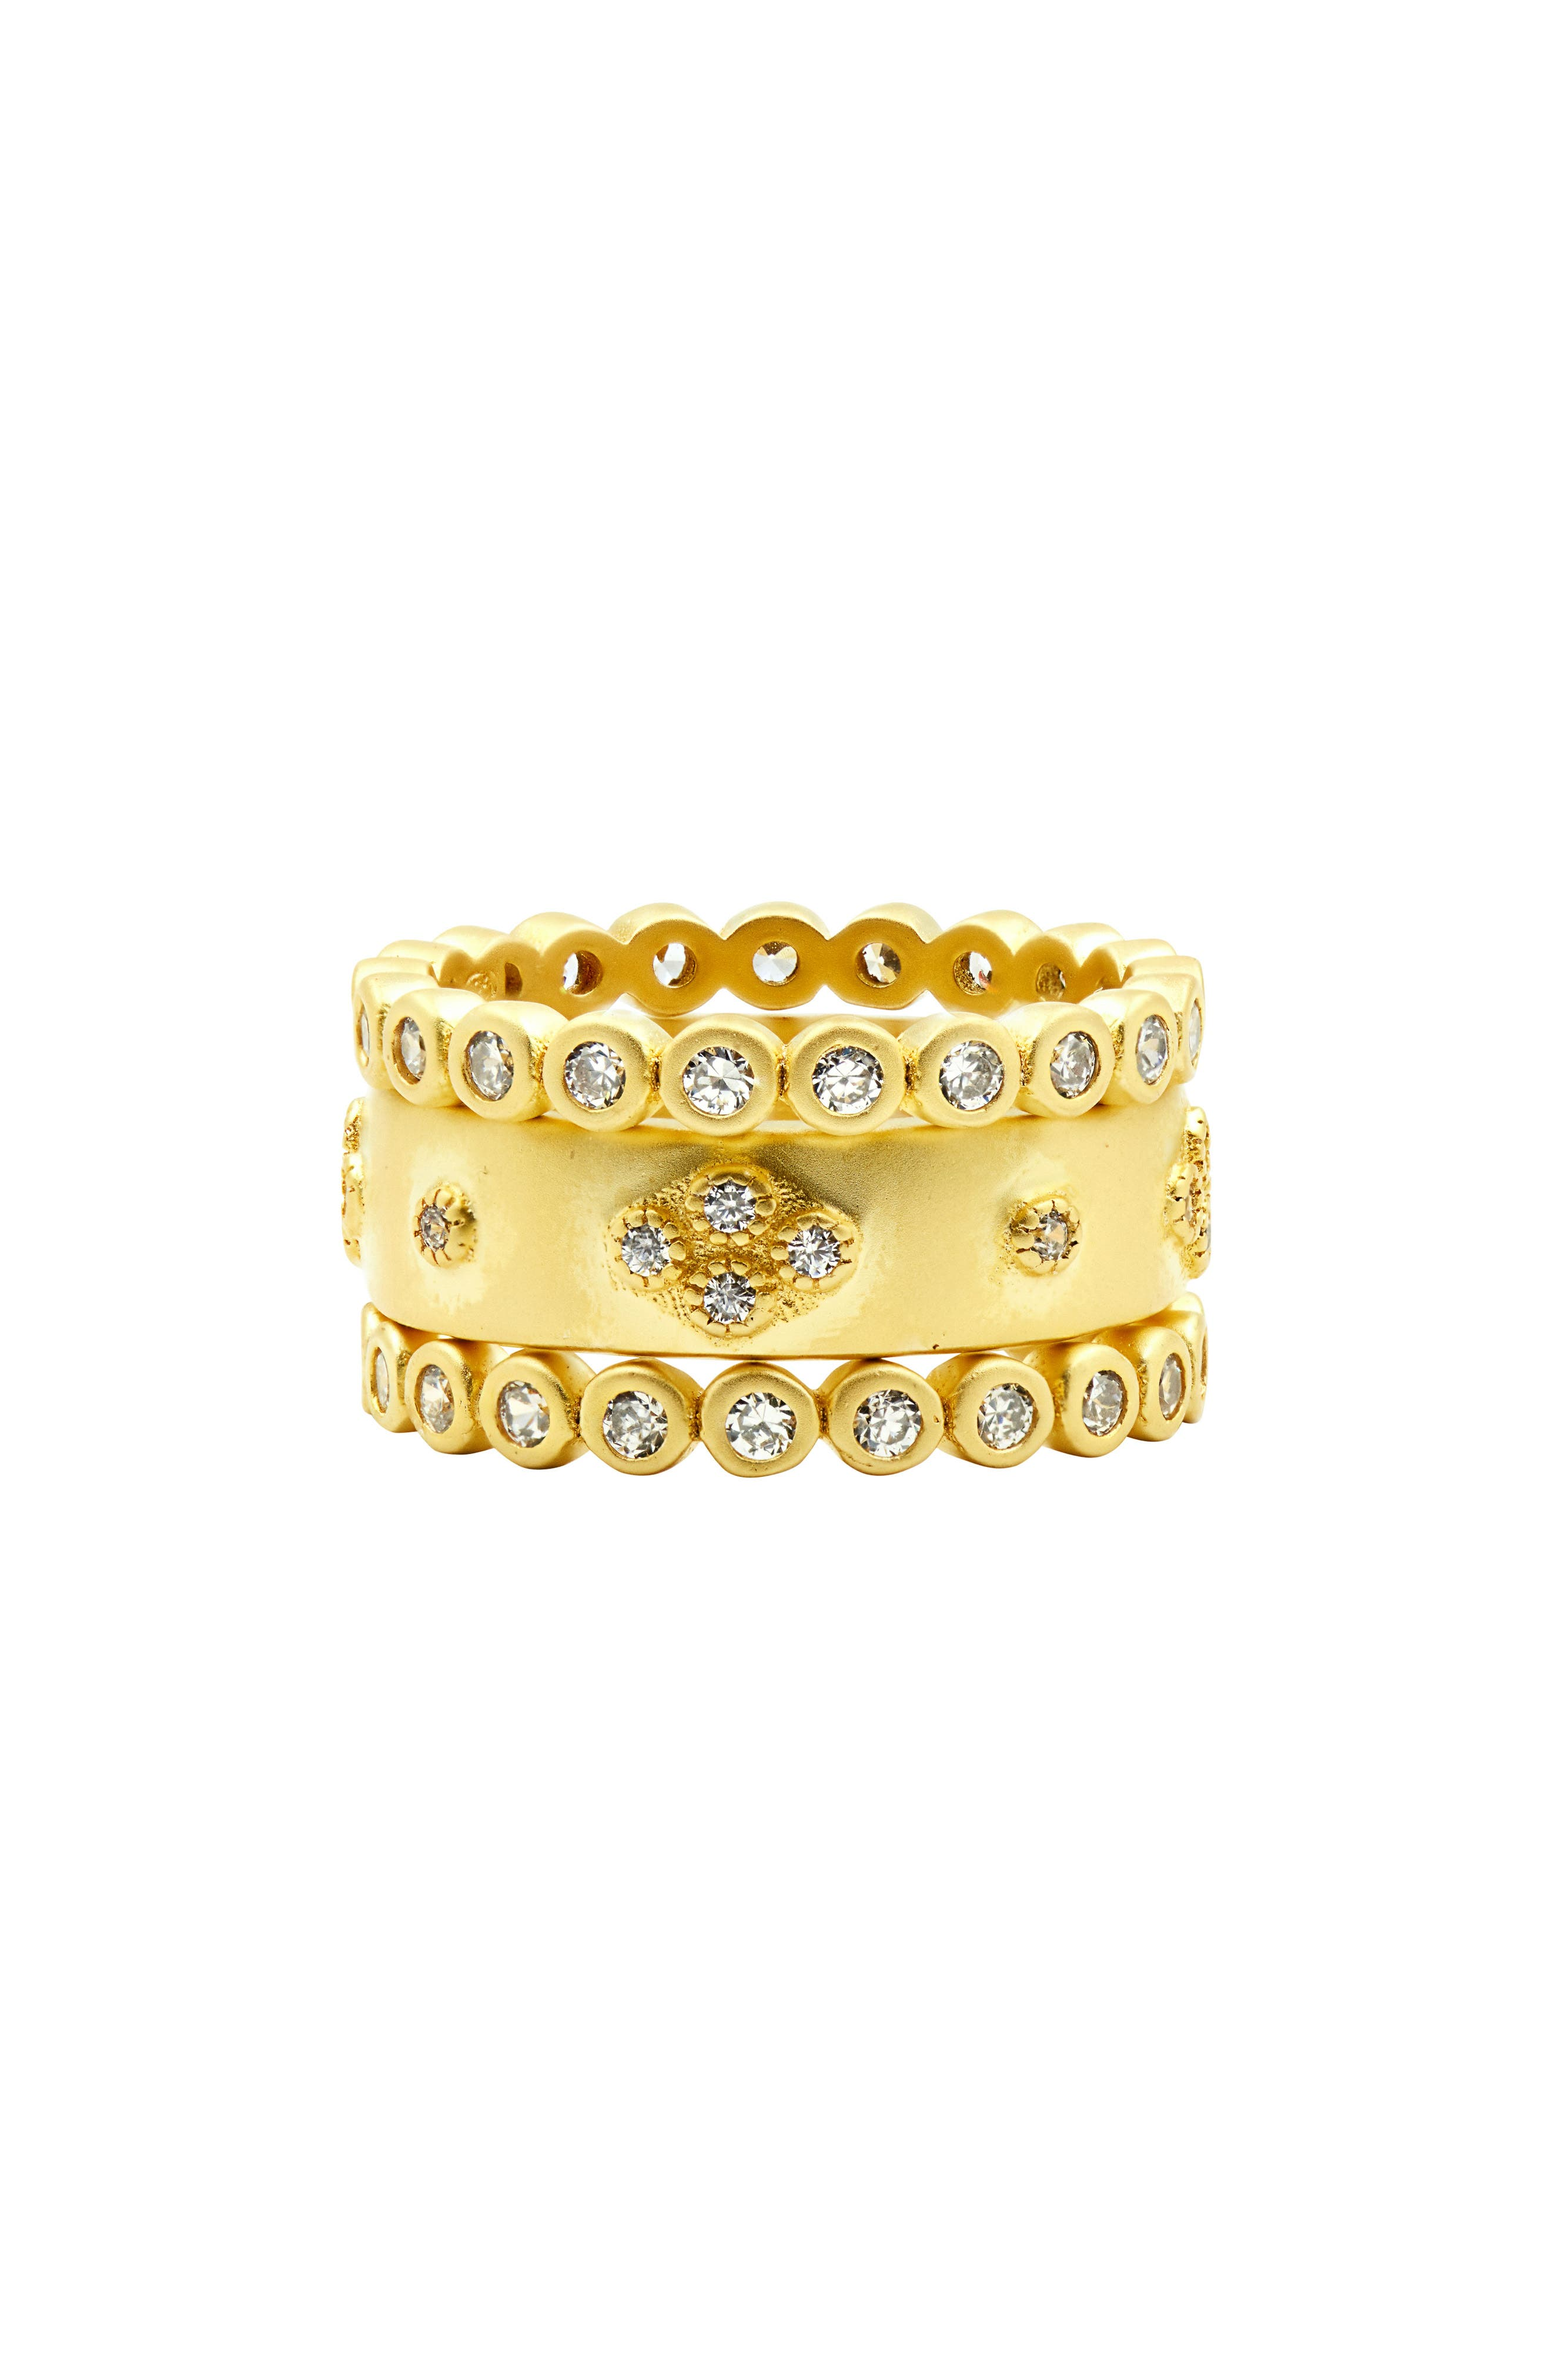 Audrey Set of 3 Cubic Zirconia Stacking Rings,                         Main,                         color, Gold/ Clear